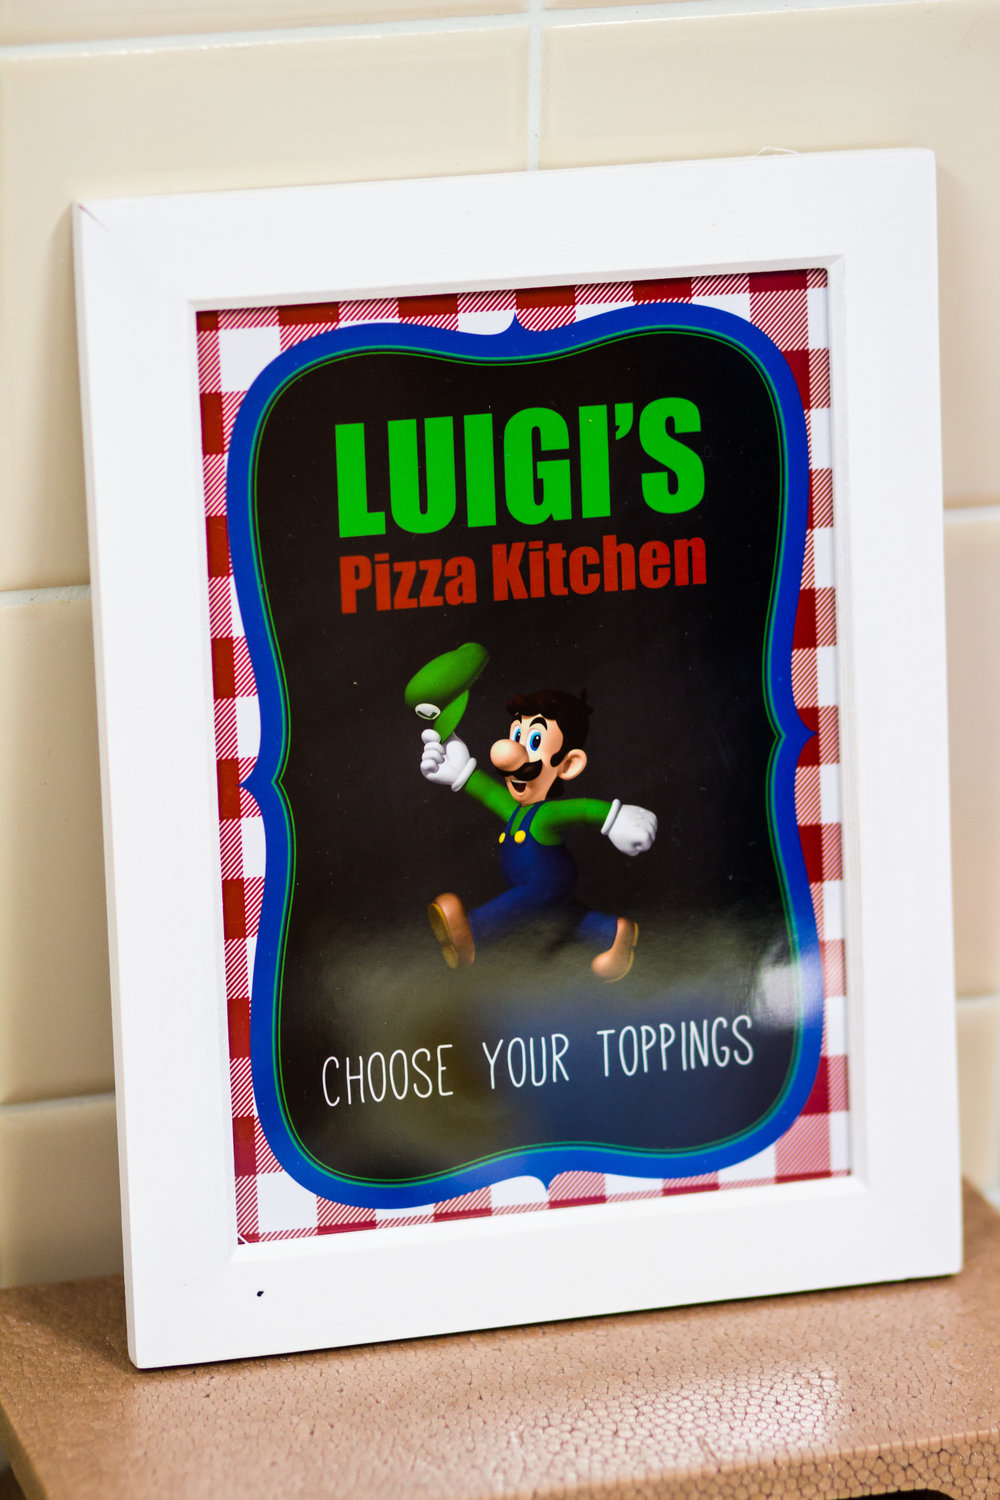 Luigi's Pizza kitchen free printable sign from shopmkkm.com